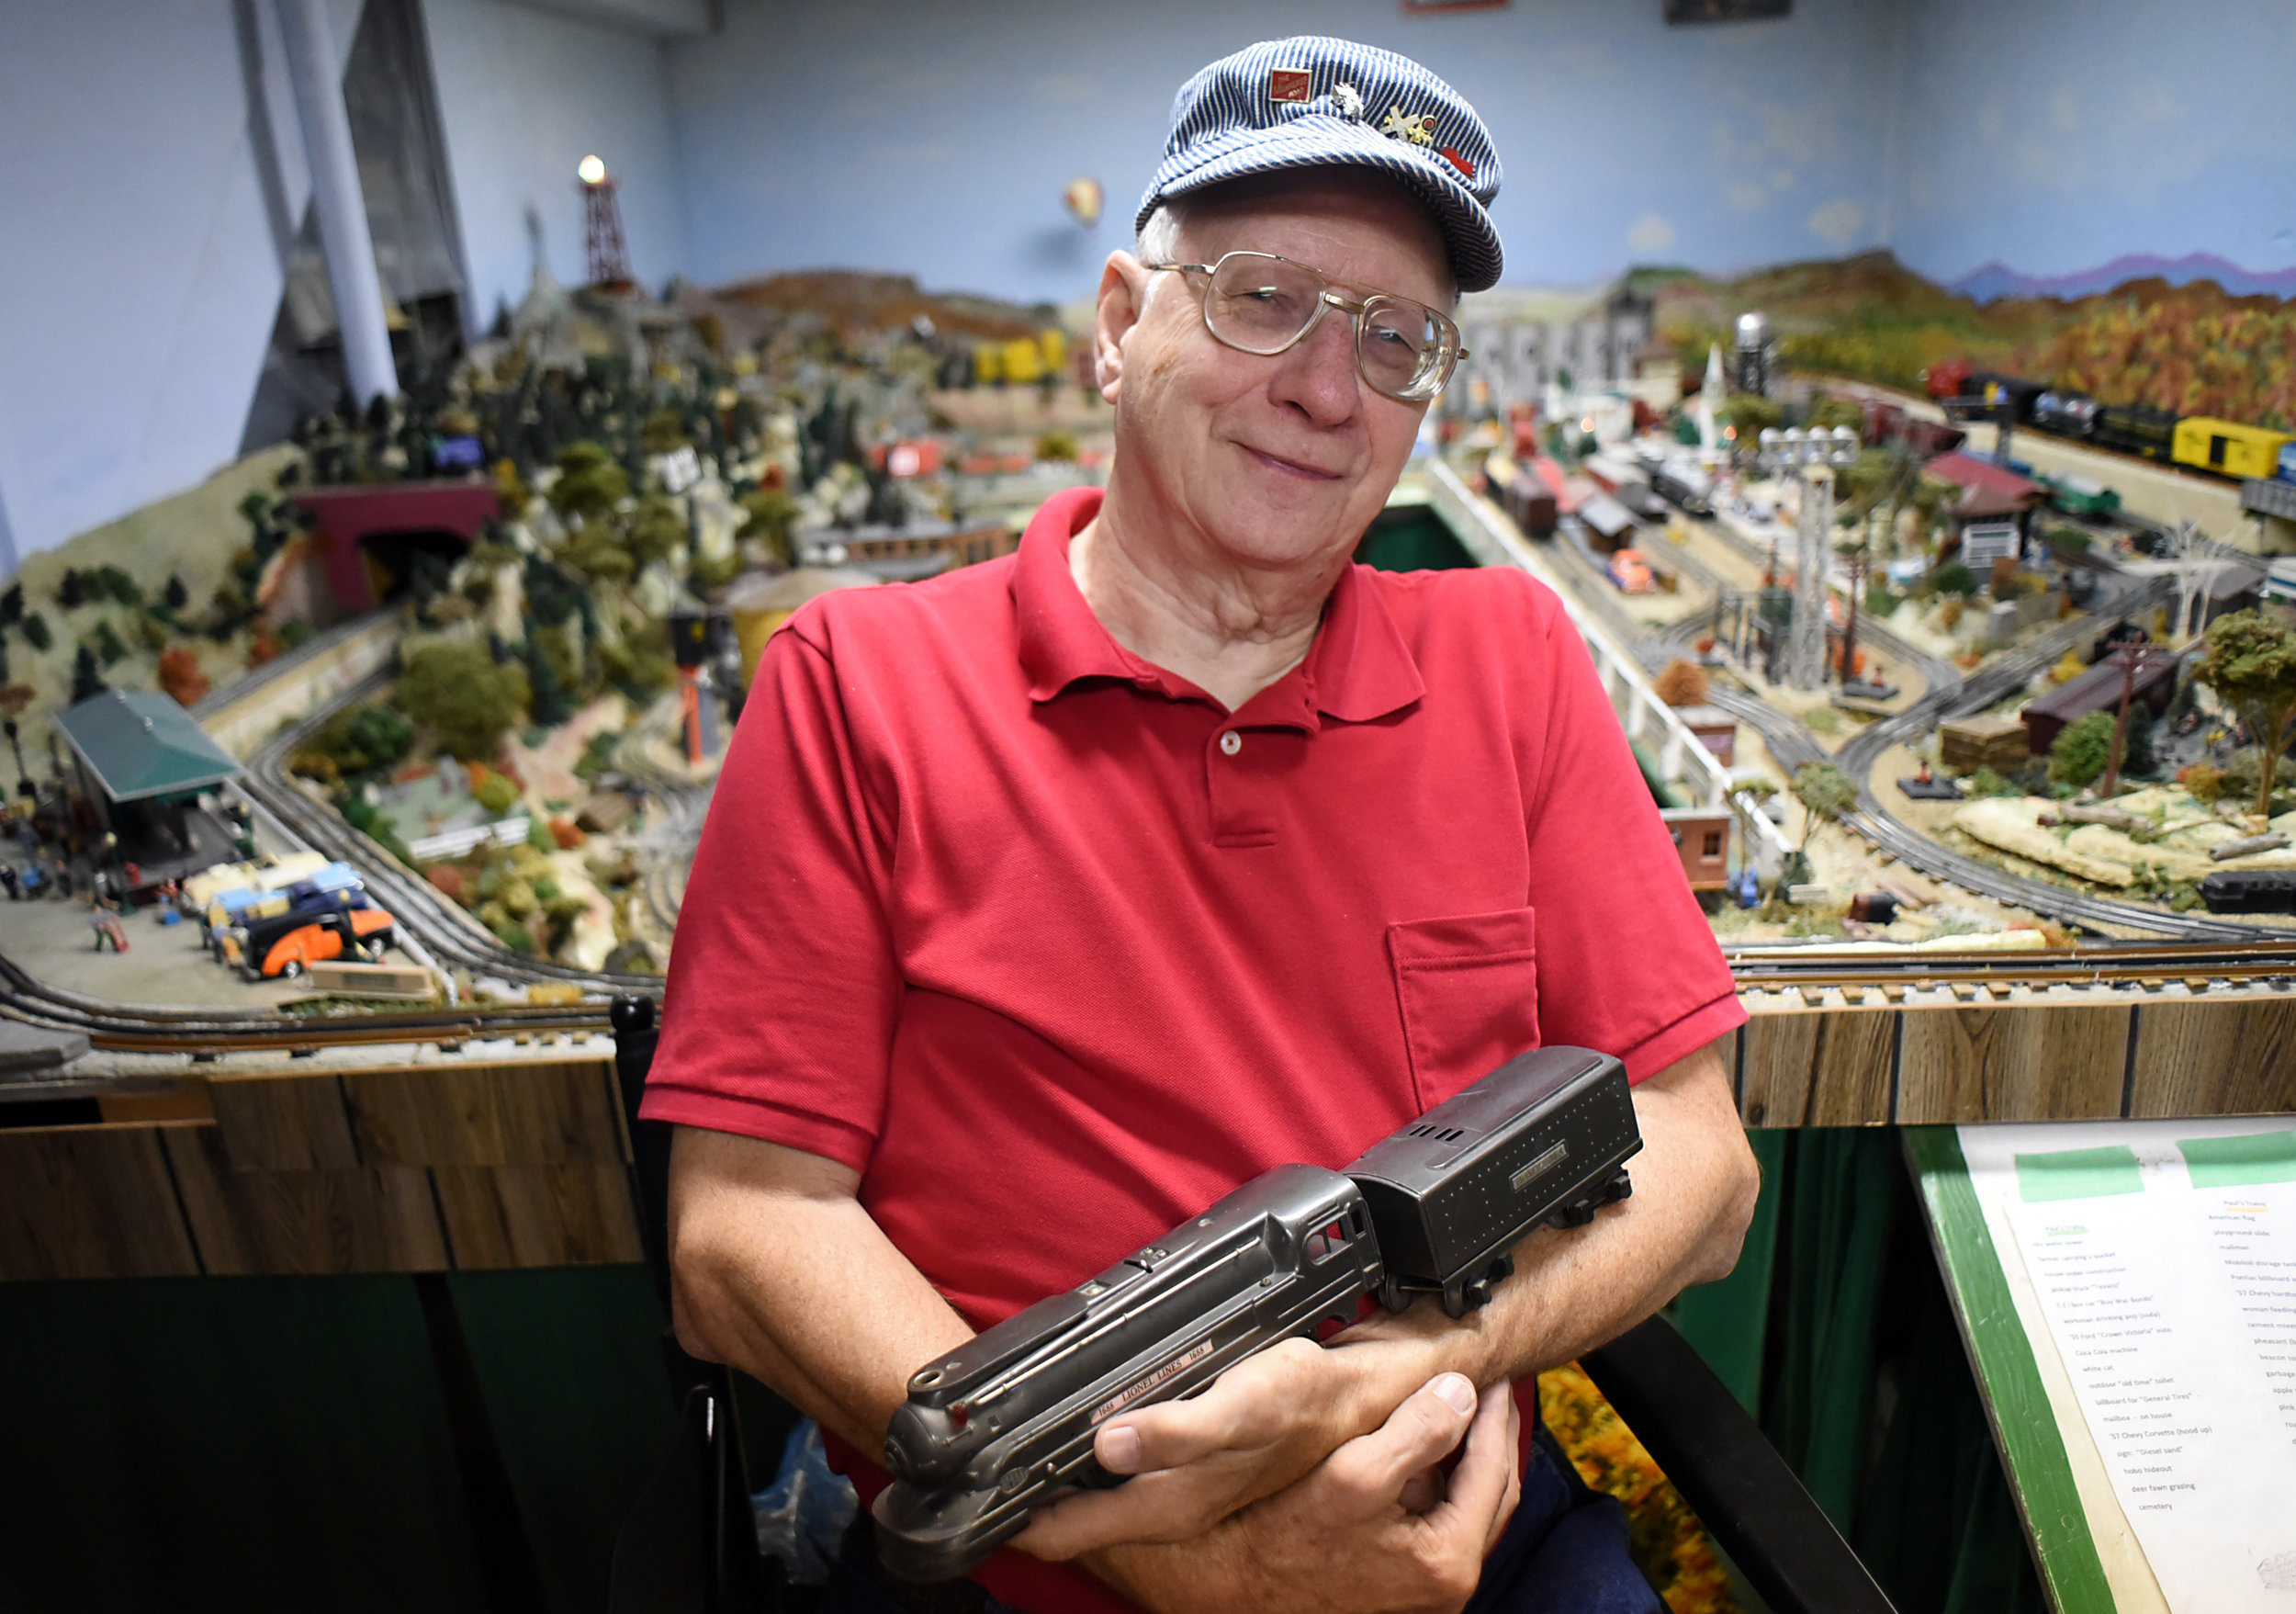 Paul Schoenike holds a Lionel train, given to him by his family doctor in 1940, next to his model train setup in the basement of his home in Monroe Sept. 24, 2015.